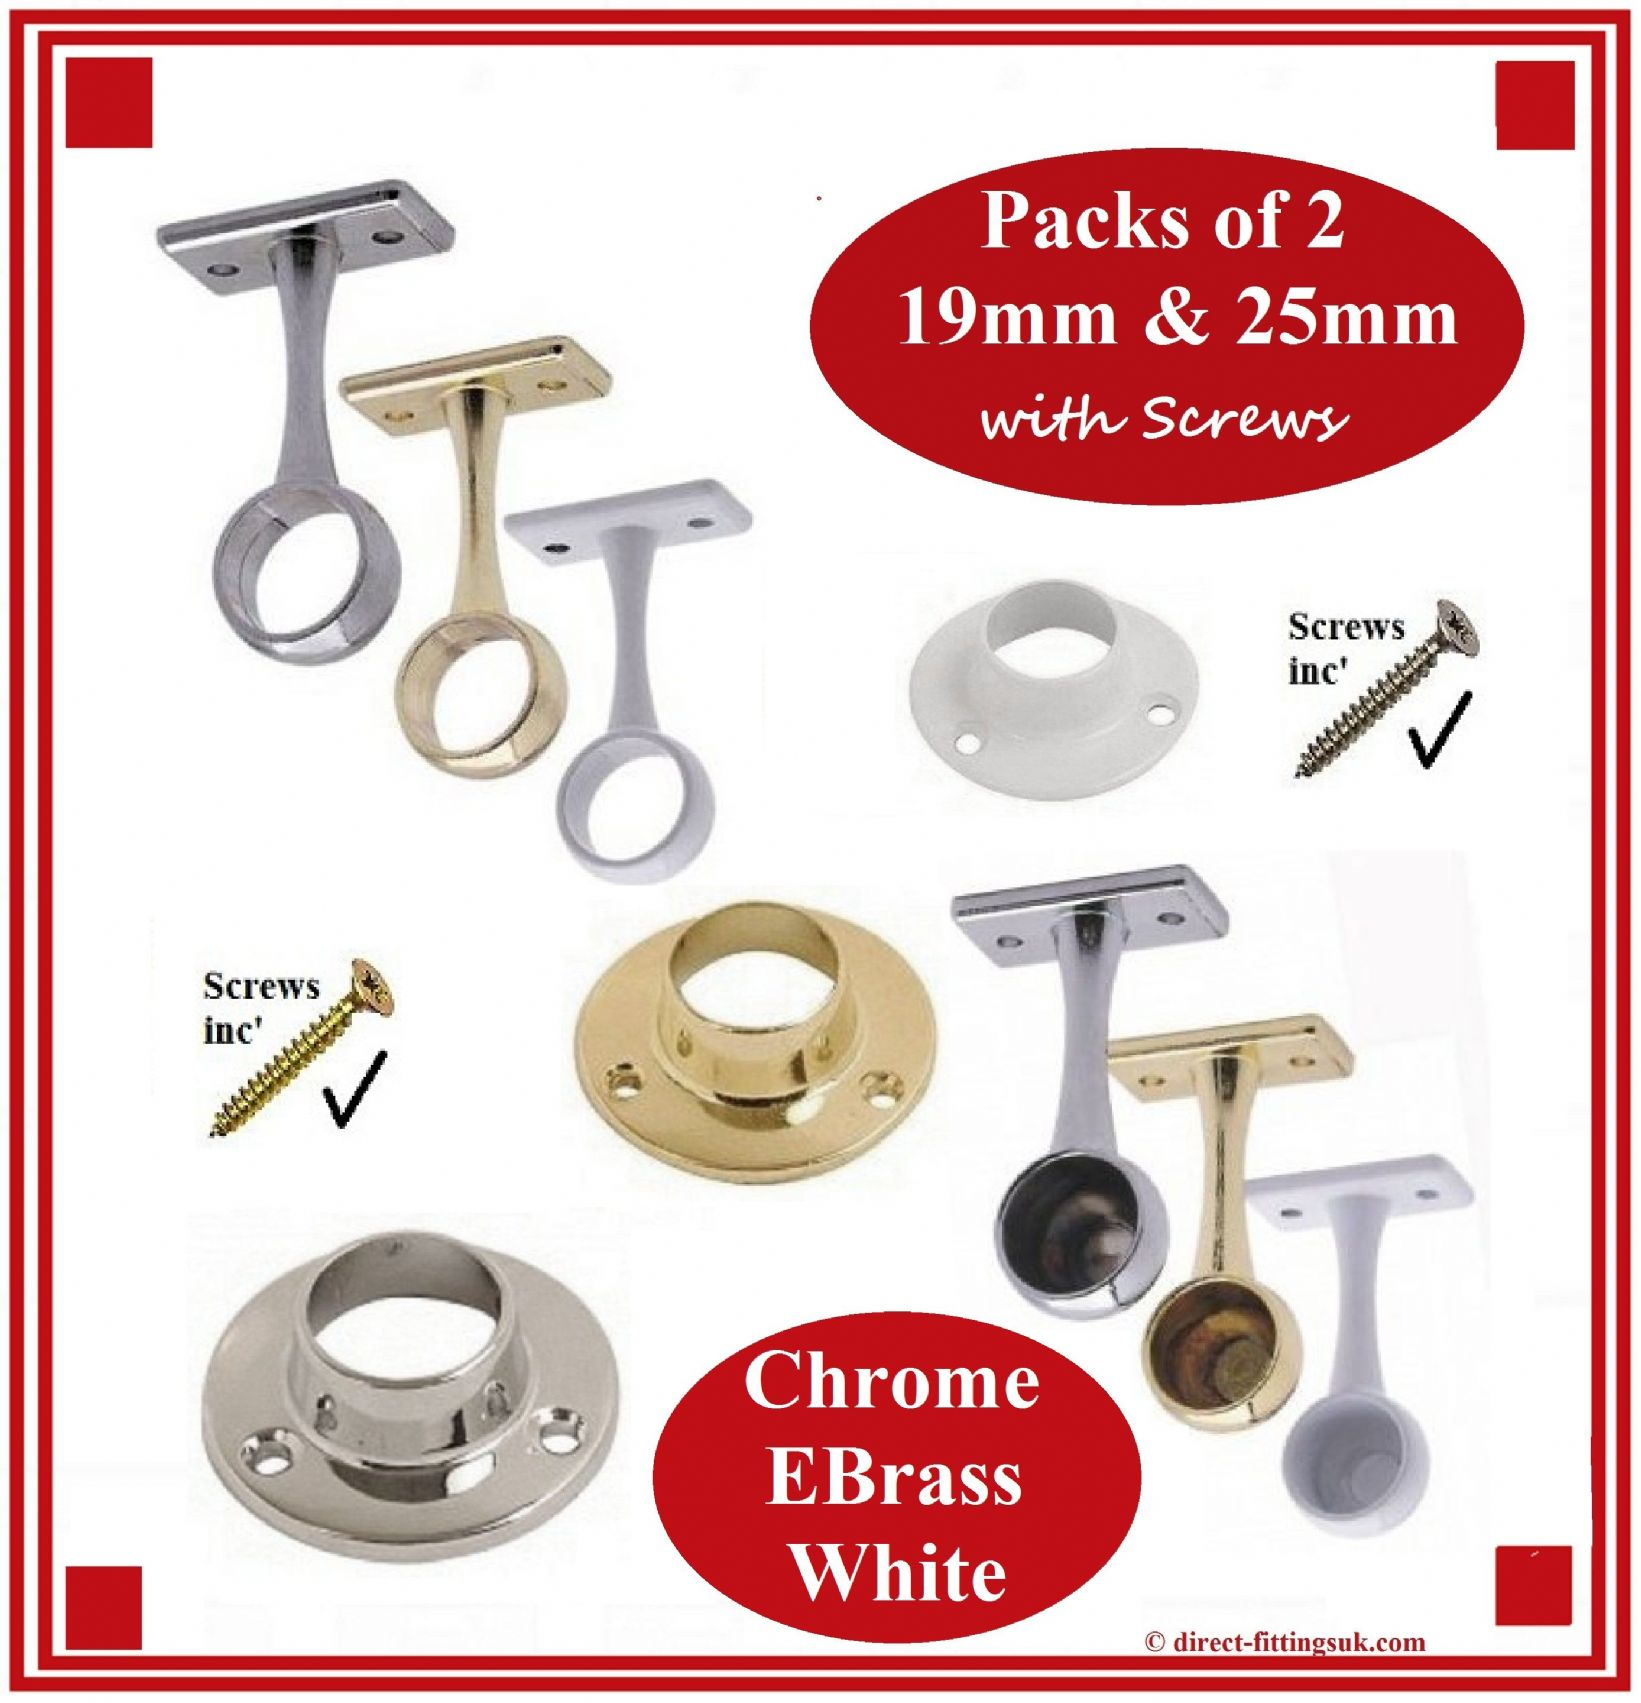 Cup Hooks Shouldered BrassChromeWhite 4 sizes : 8838 copy copy from www.direct-fittingsuk.com size 1641 x 1703 jpeg 253kB